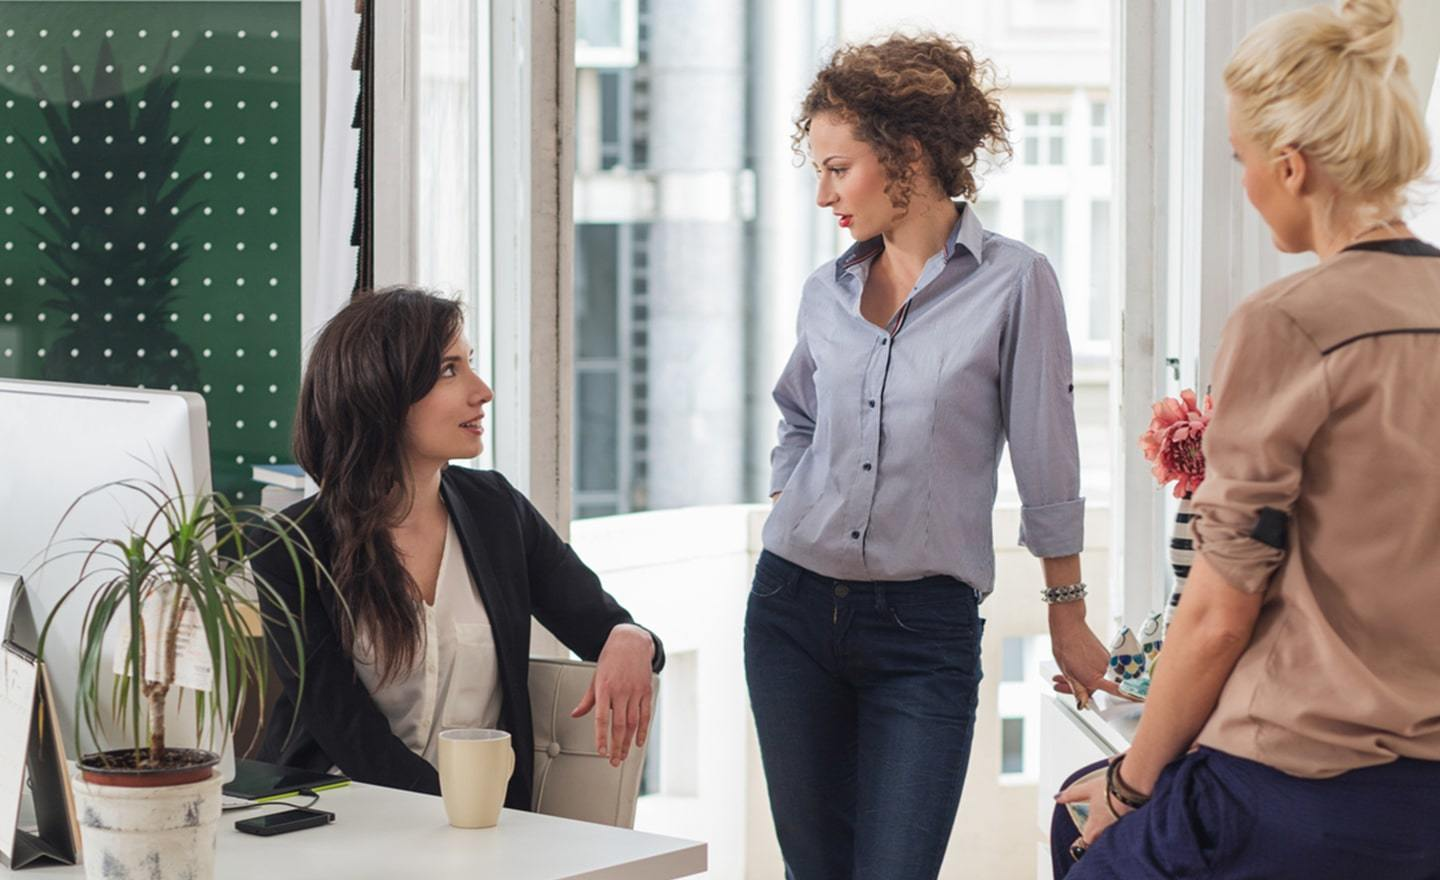 Three women having a discussion in an open office